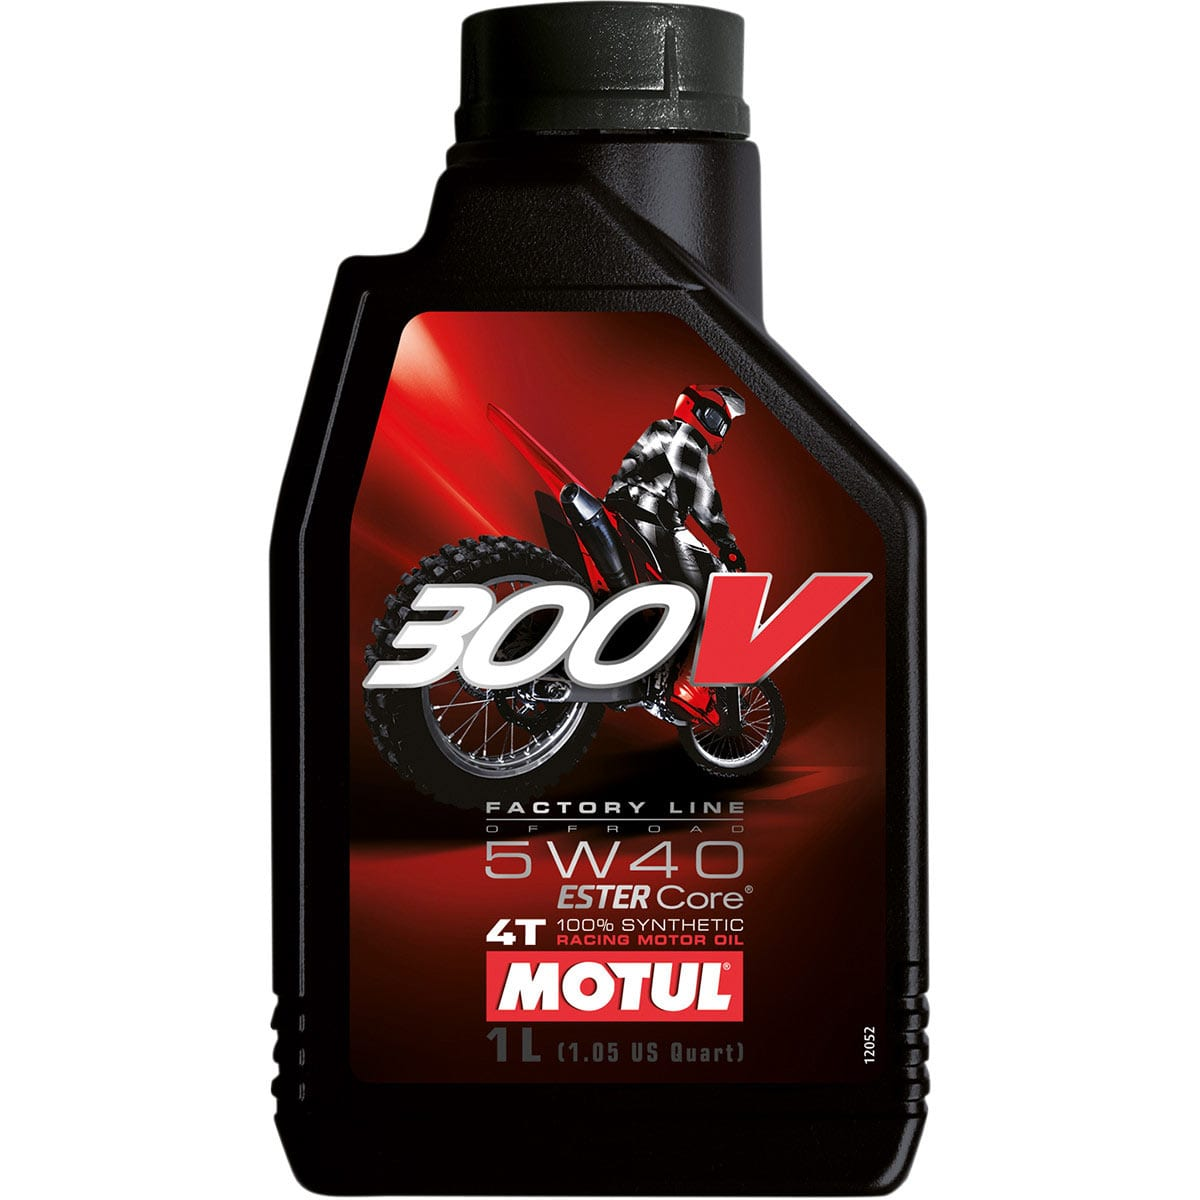 Motul 300V Factory Line Off Road 5W40 | 1L